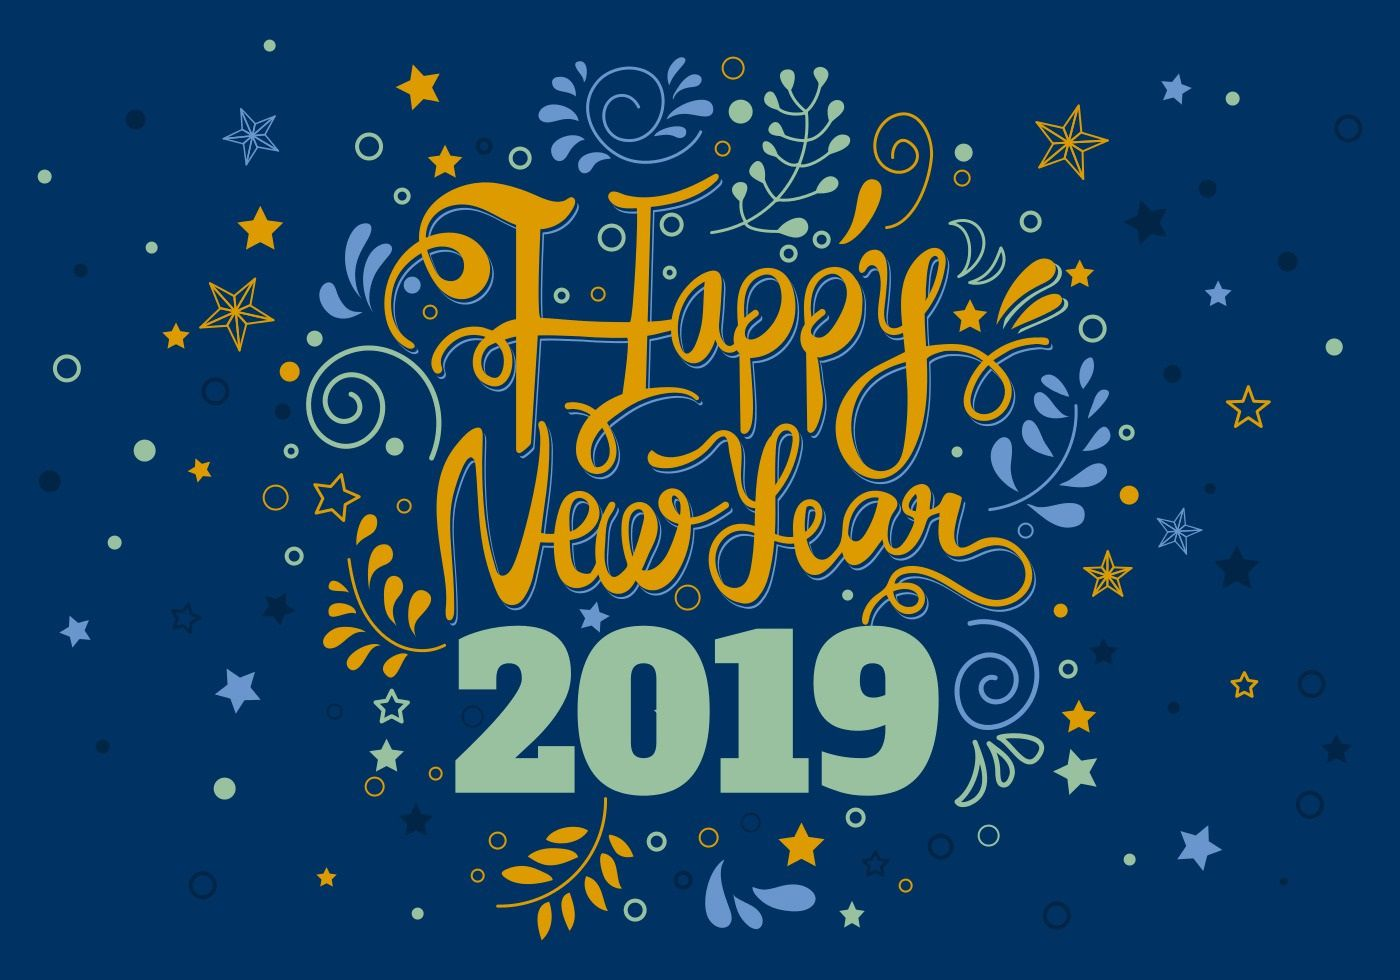 008 Awesome New Year Card Template Design  Happy Chinese 2020 FreeFull